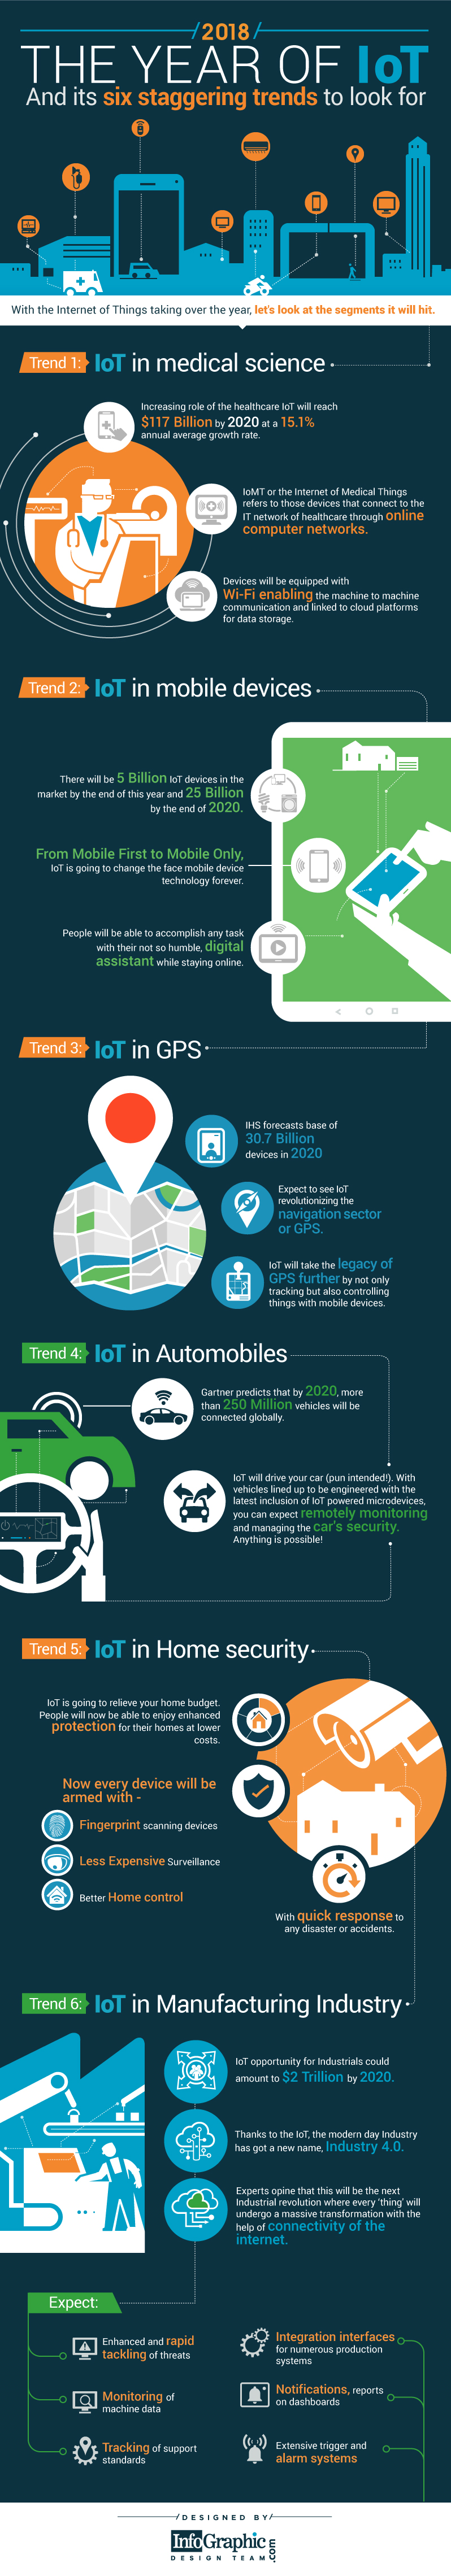 The Amazing Opportunities of IoT: Trends to Look Out For in 2018 - Infographic